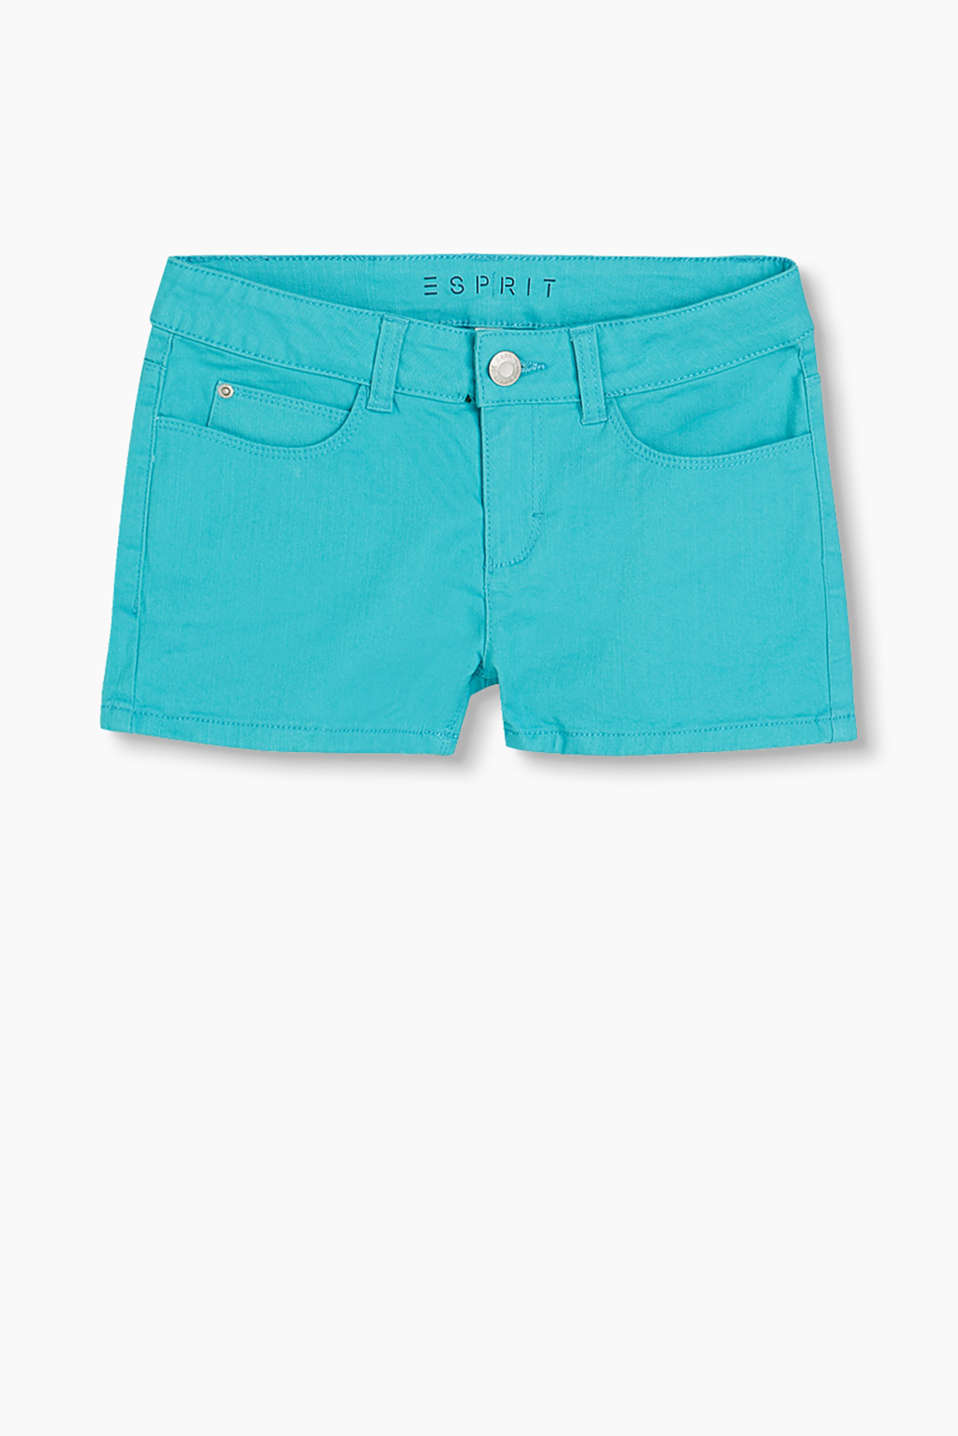 In knalliger Farbe: Shorts im 5-Pocket-Stil